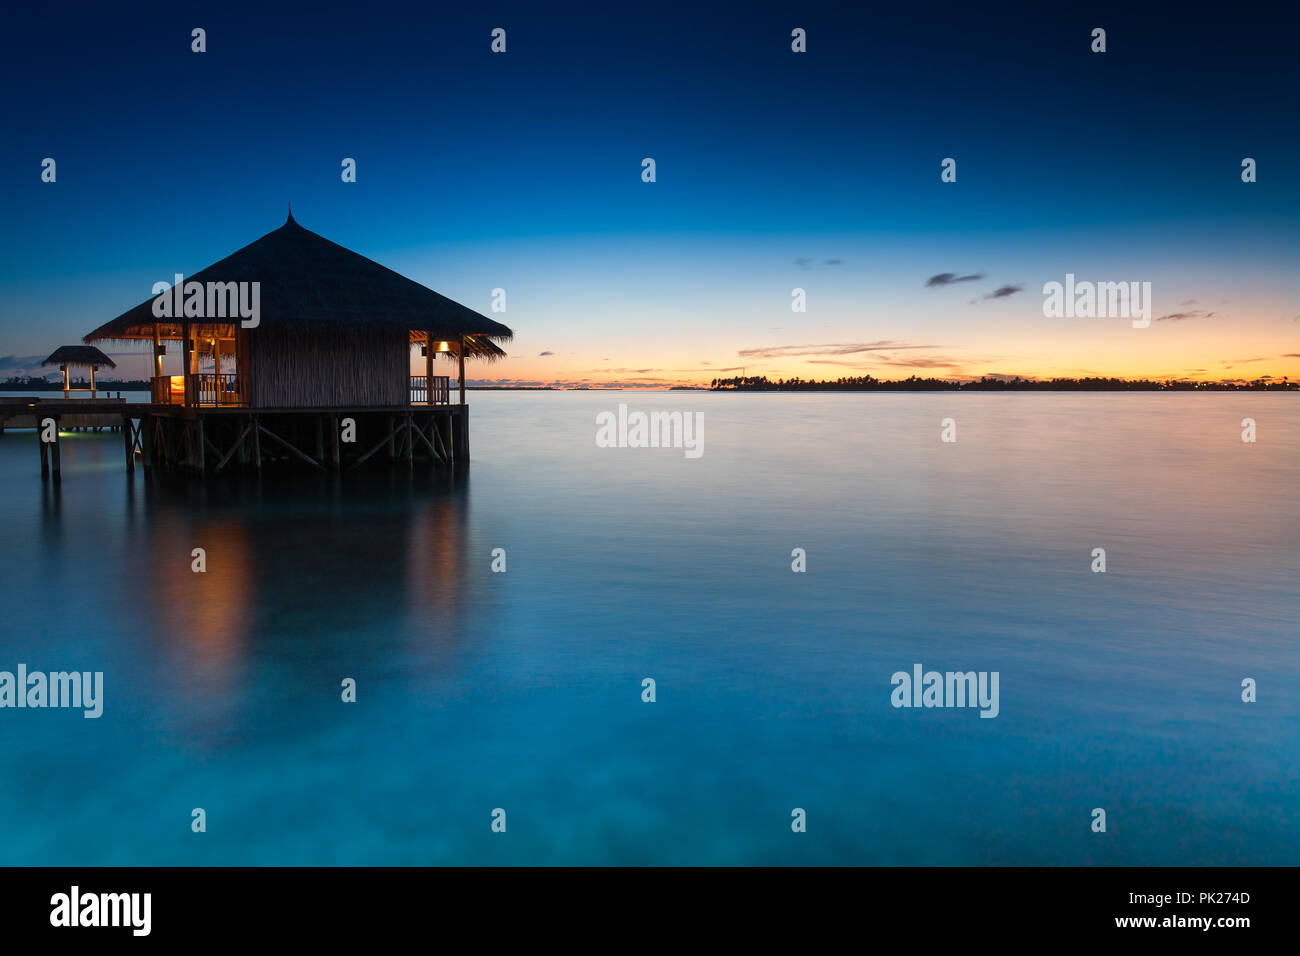 Maldivian Tropical Sunset with Bamboo Villa and Lights on smooth Ocean - Stock Image